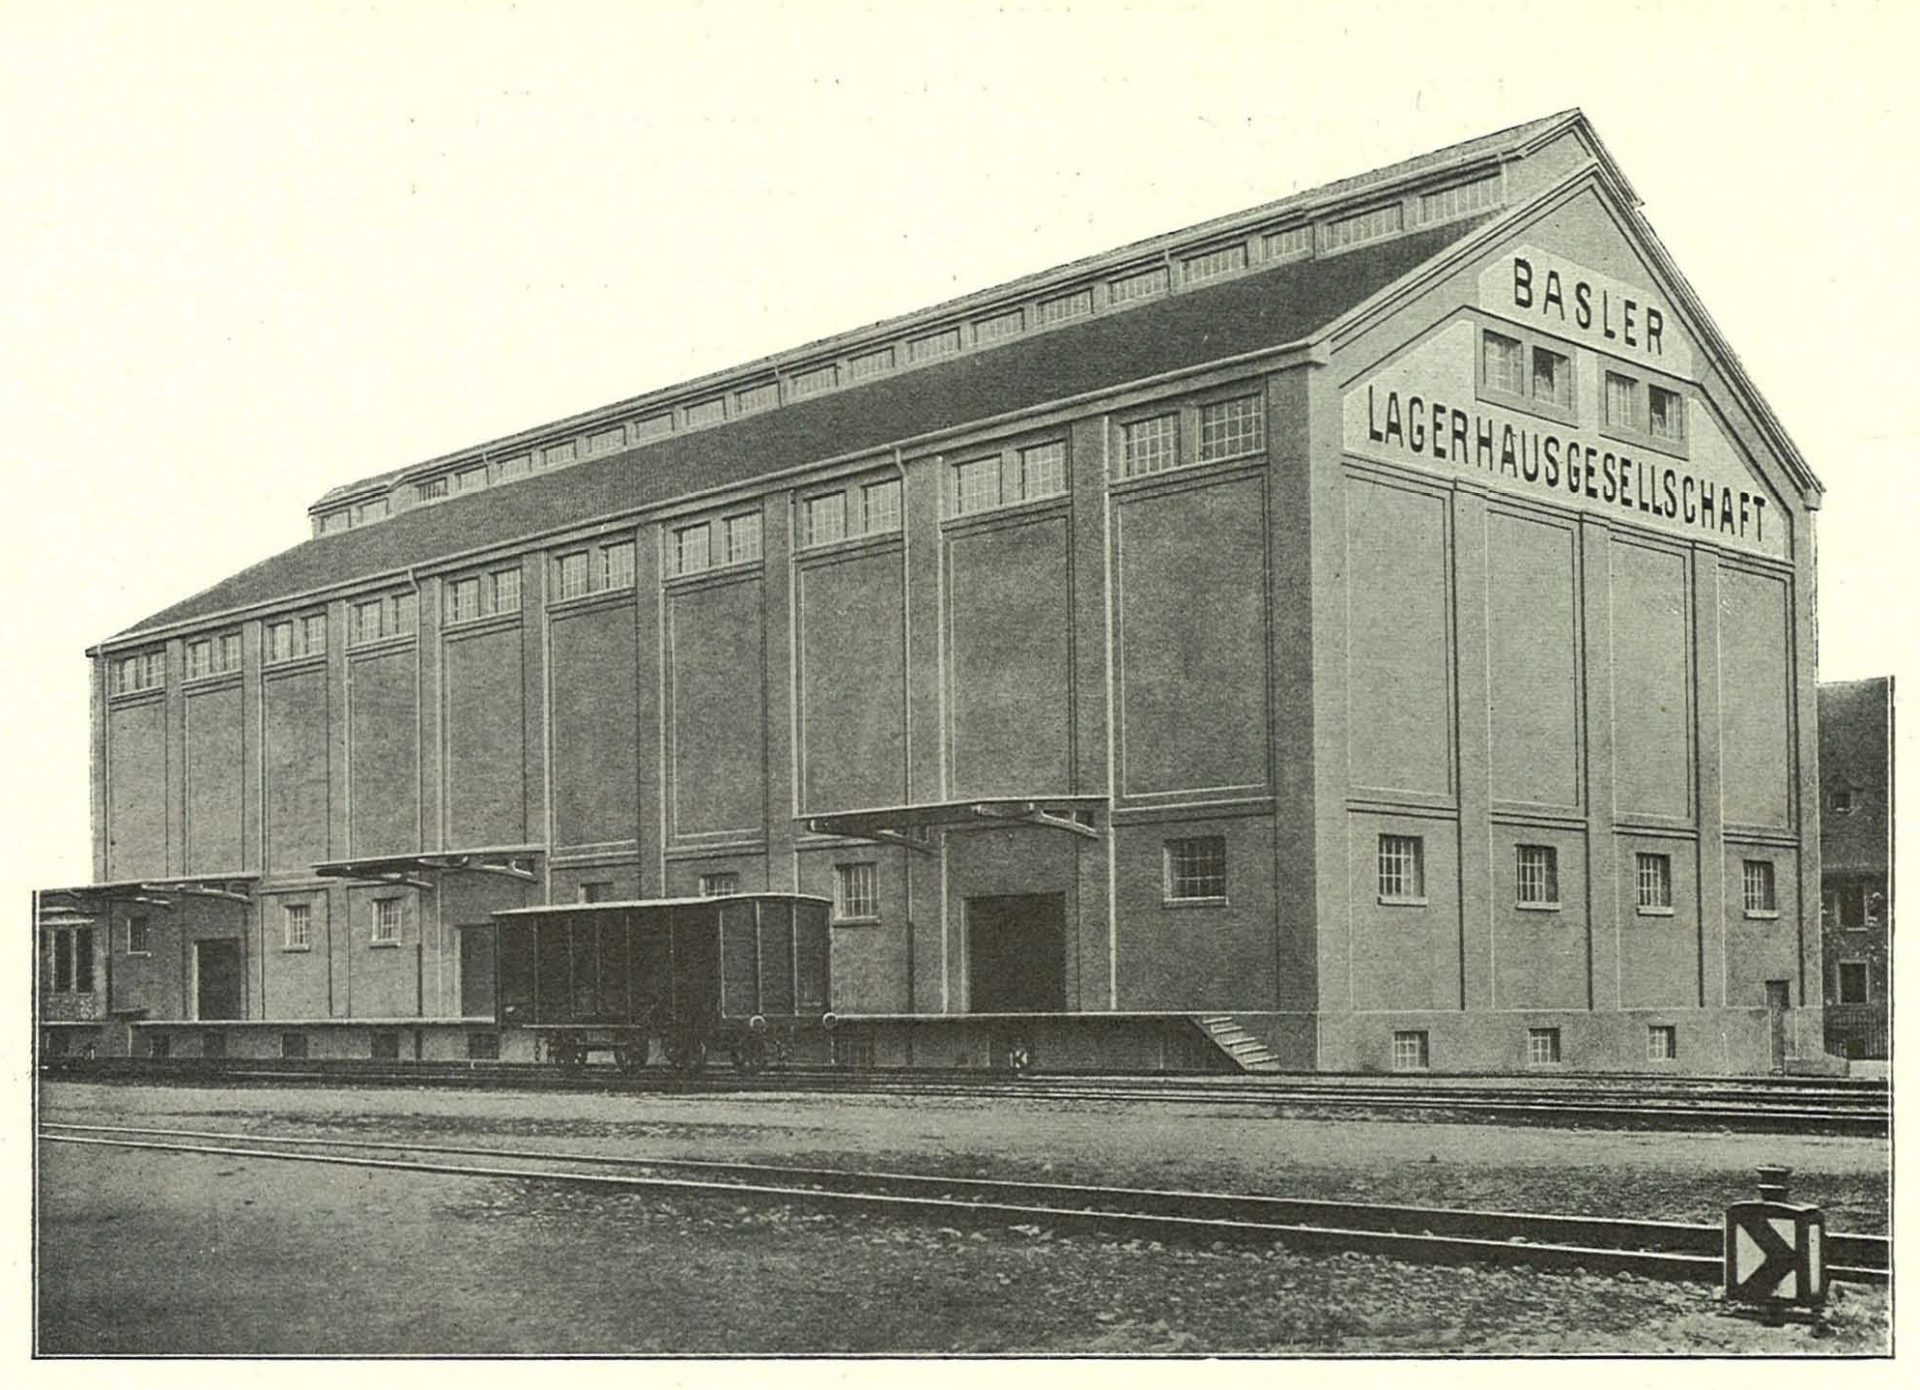 Historical picture from a brochure of Basler Lagerhausgesellschaft, 1912